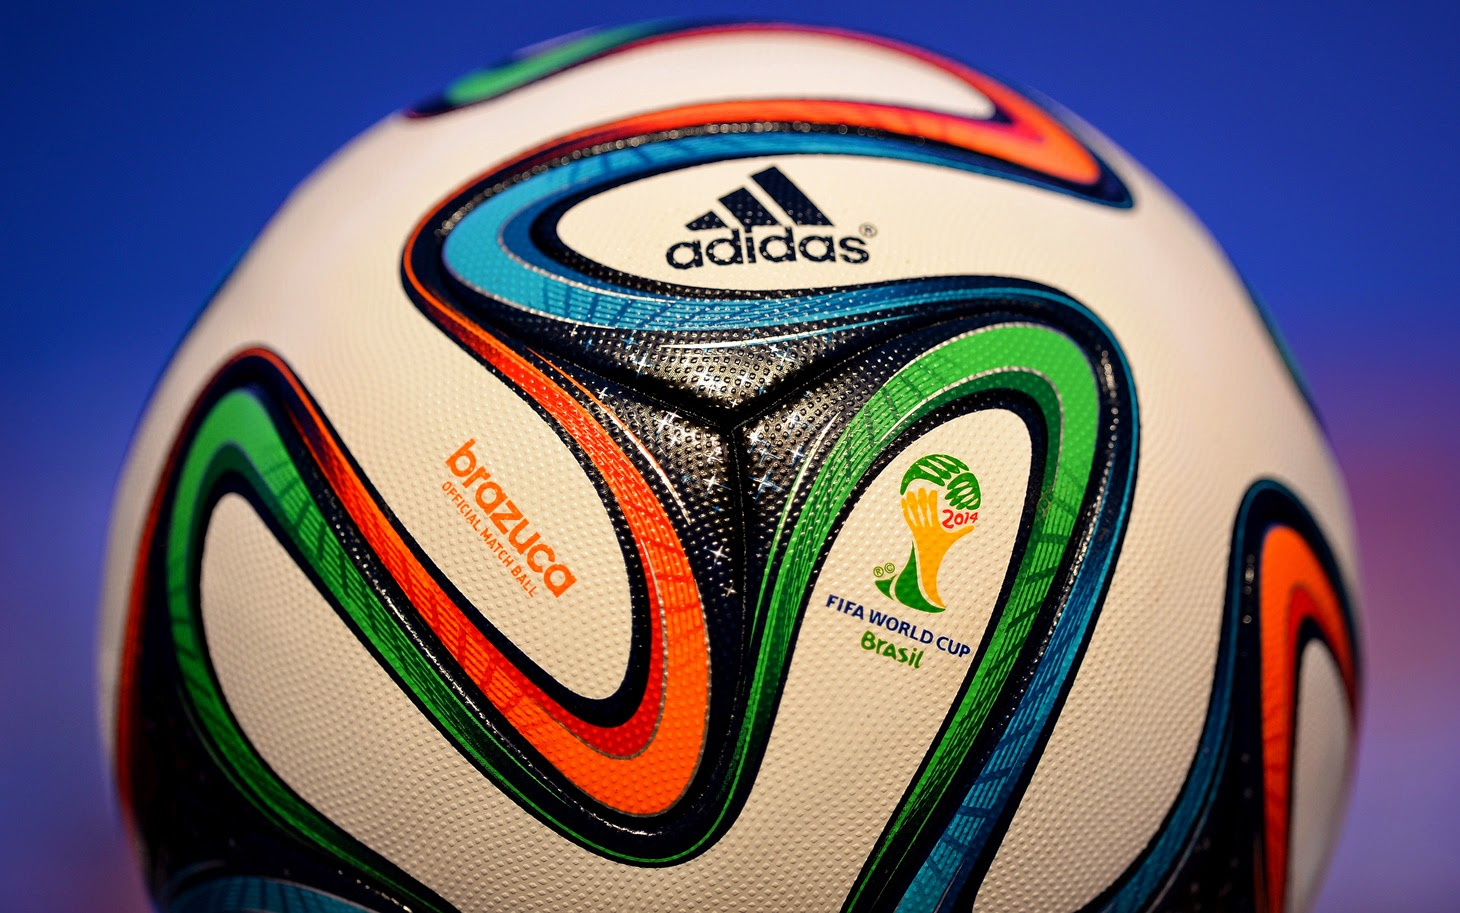 fifa world cup 2014 wallpapers nice wallpapers